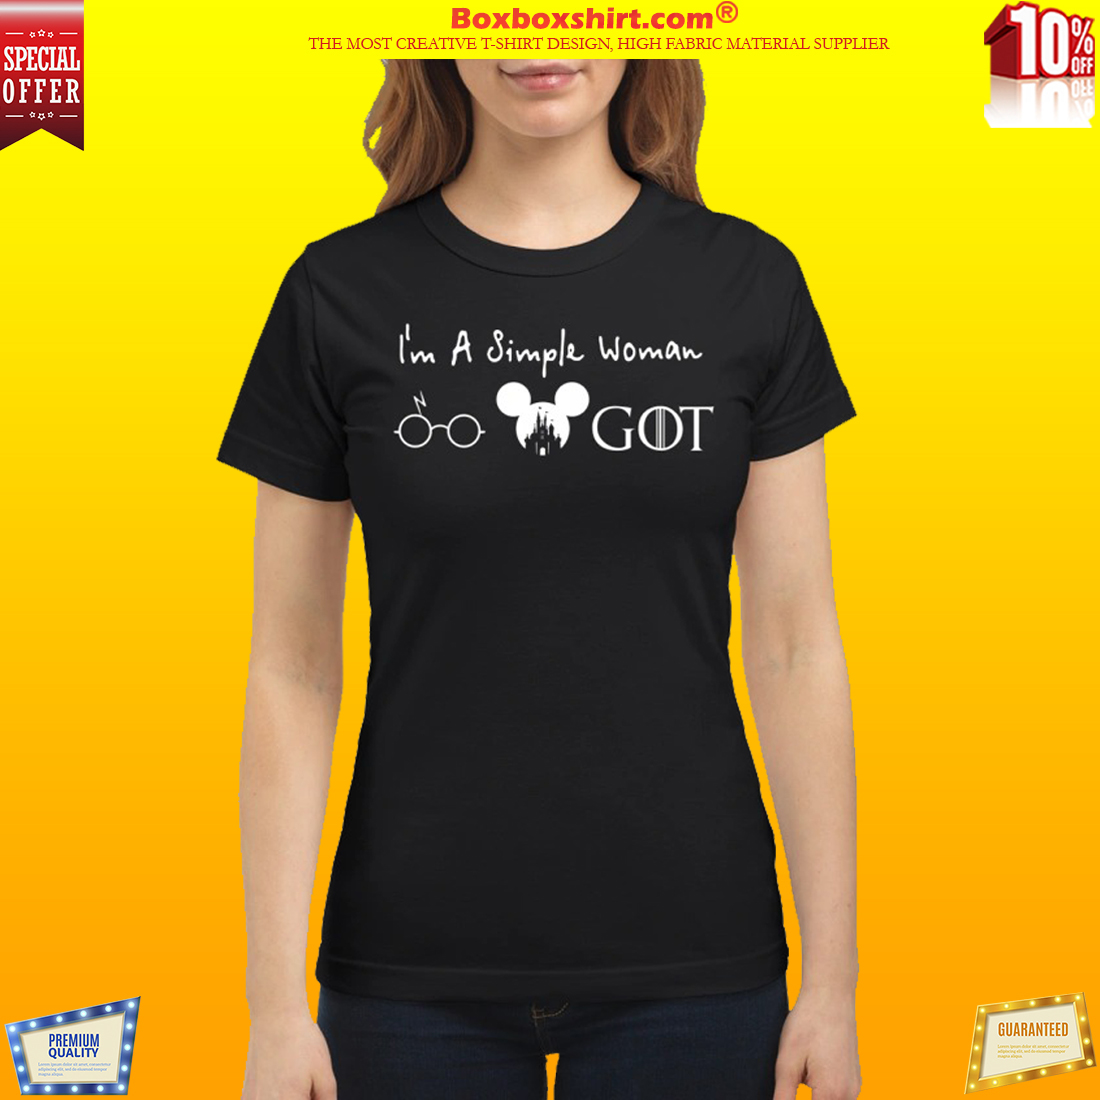 1b638107397 I'm a simple woman Harry Potter Mickey mouse Game of Thrones shirt